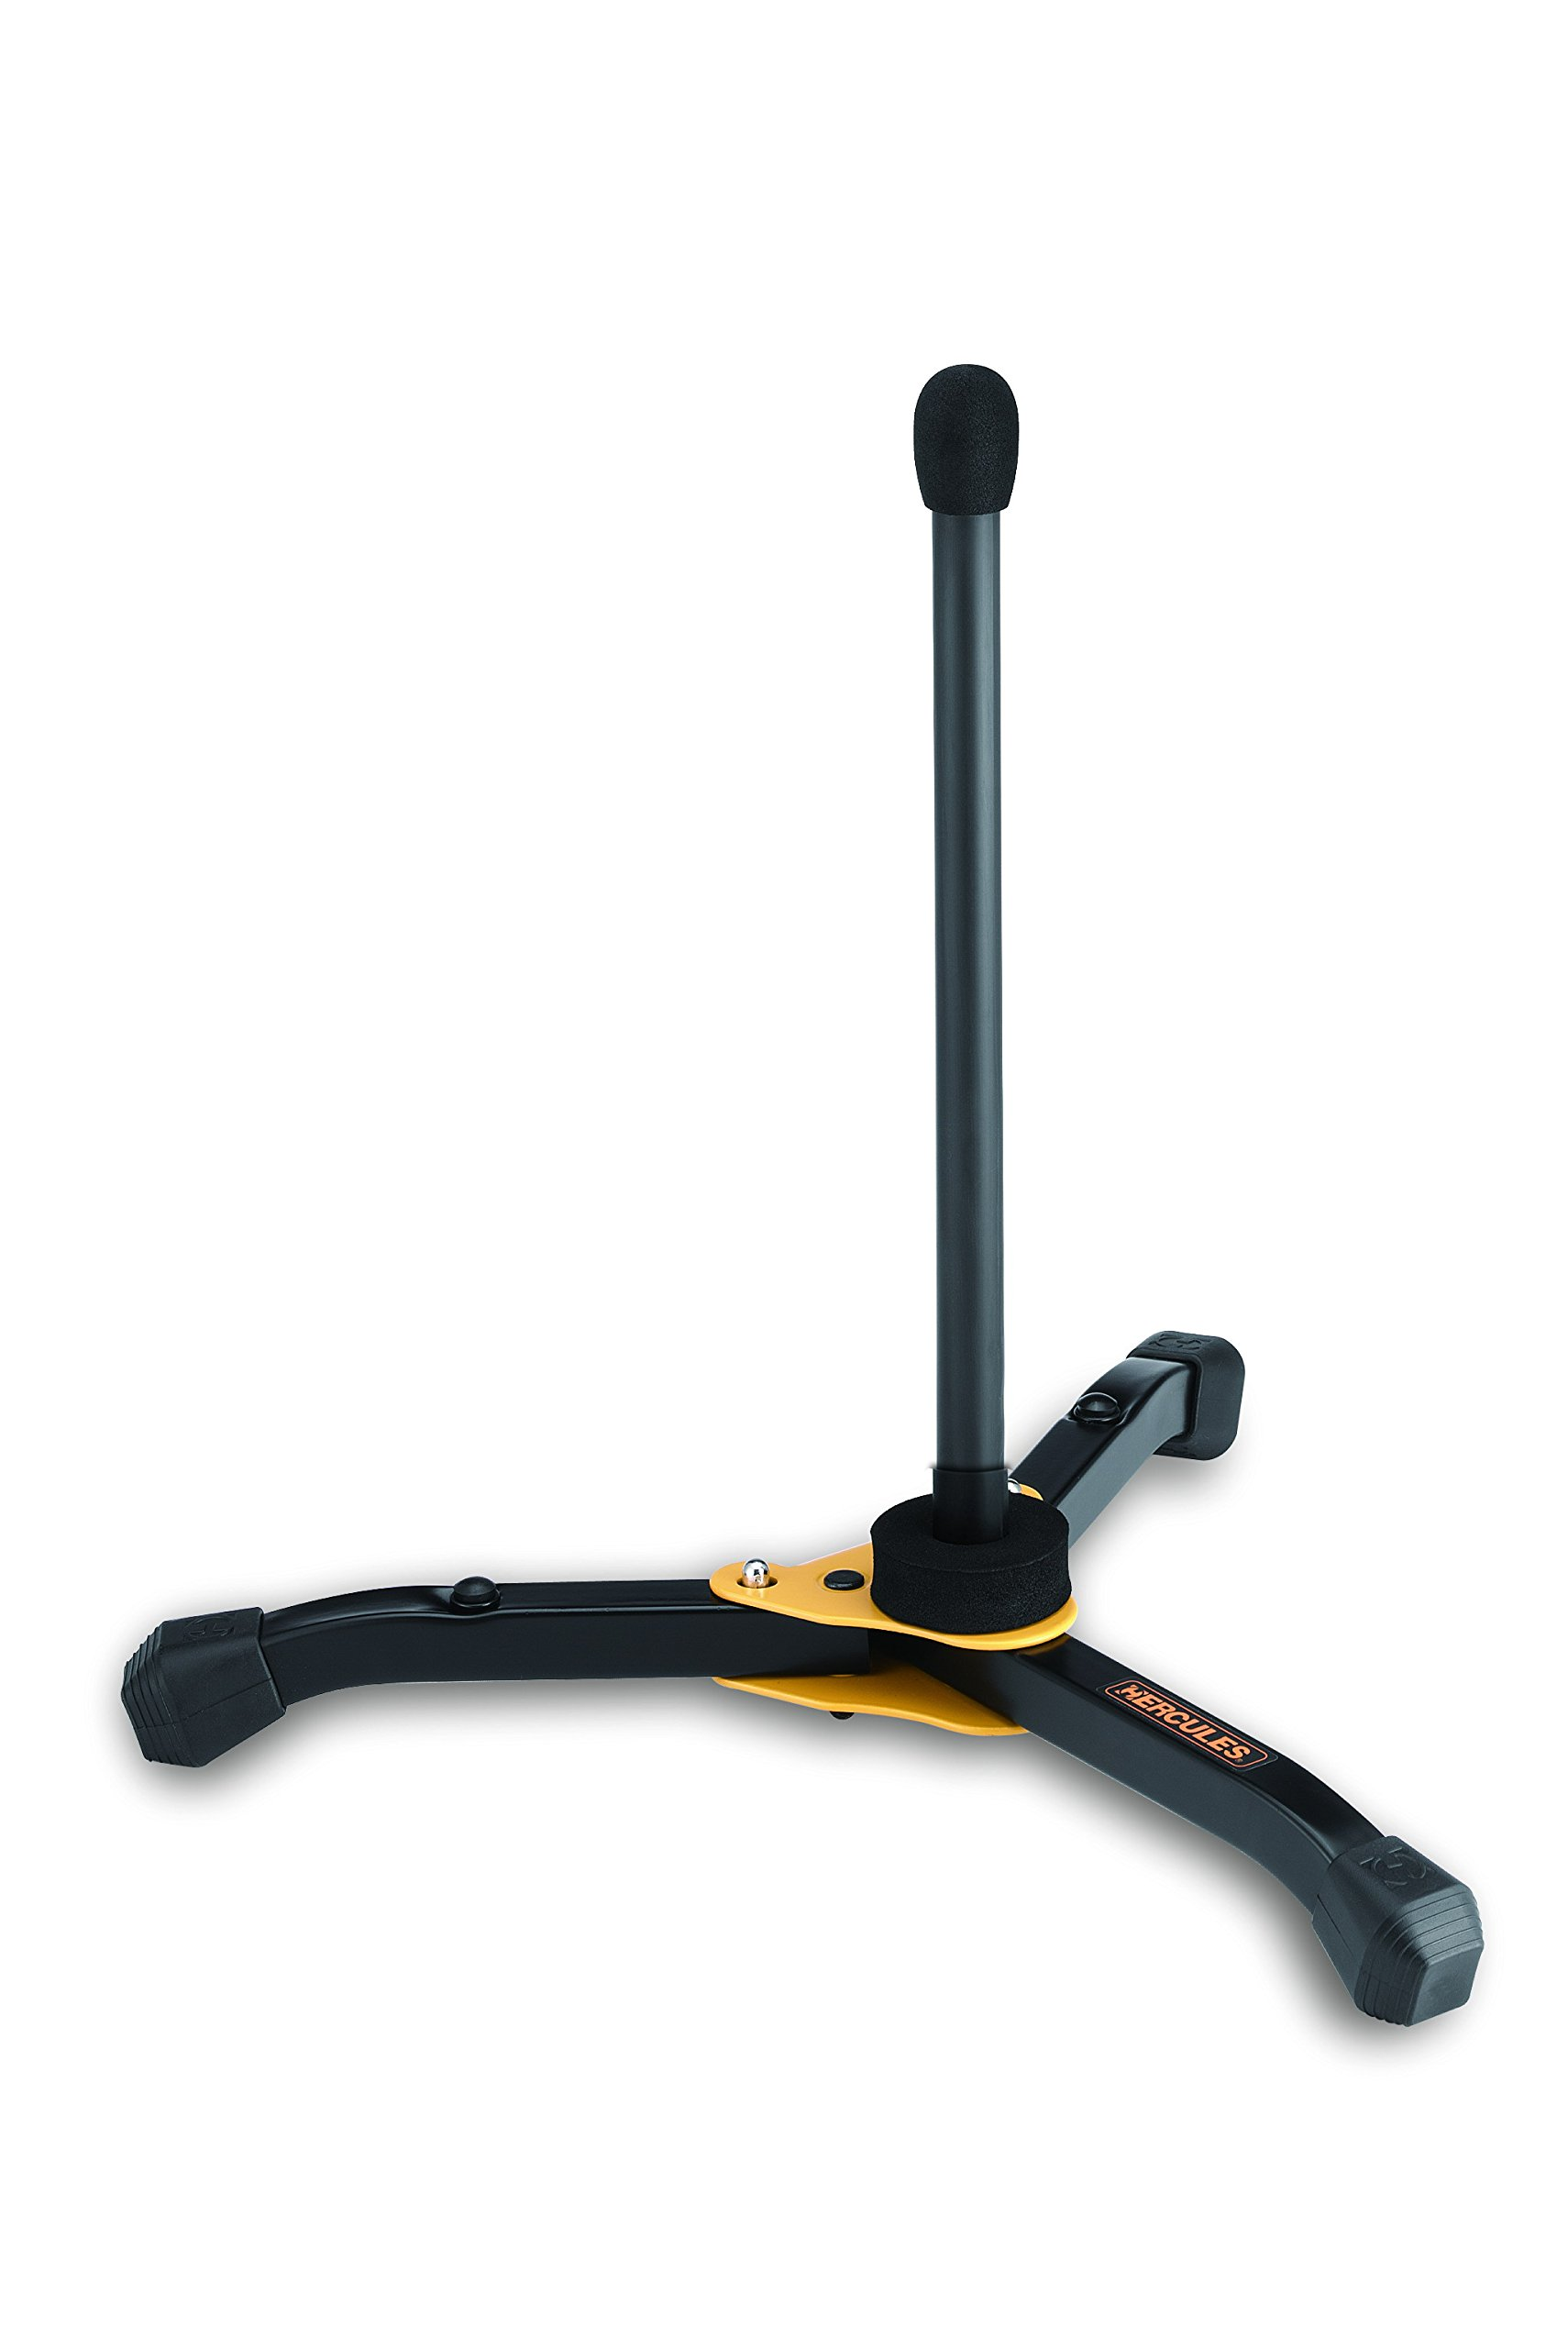 Hercules DS562BB Alto Flute Stand with Bag